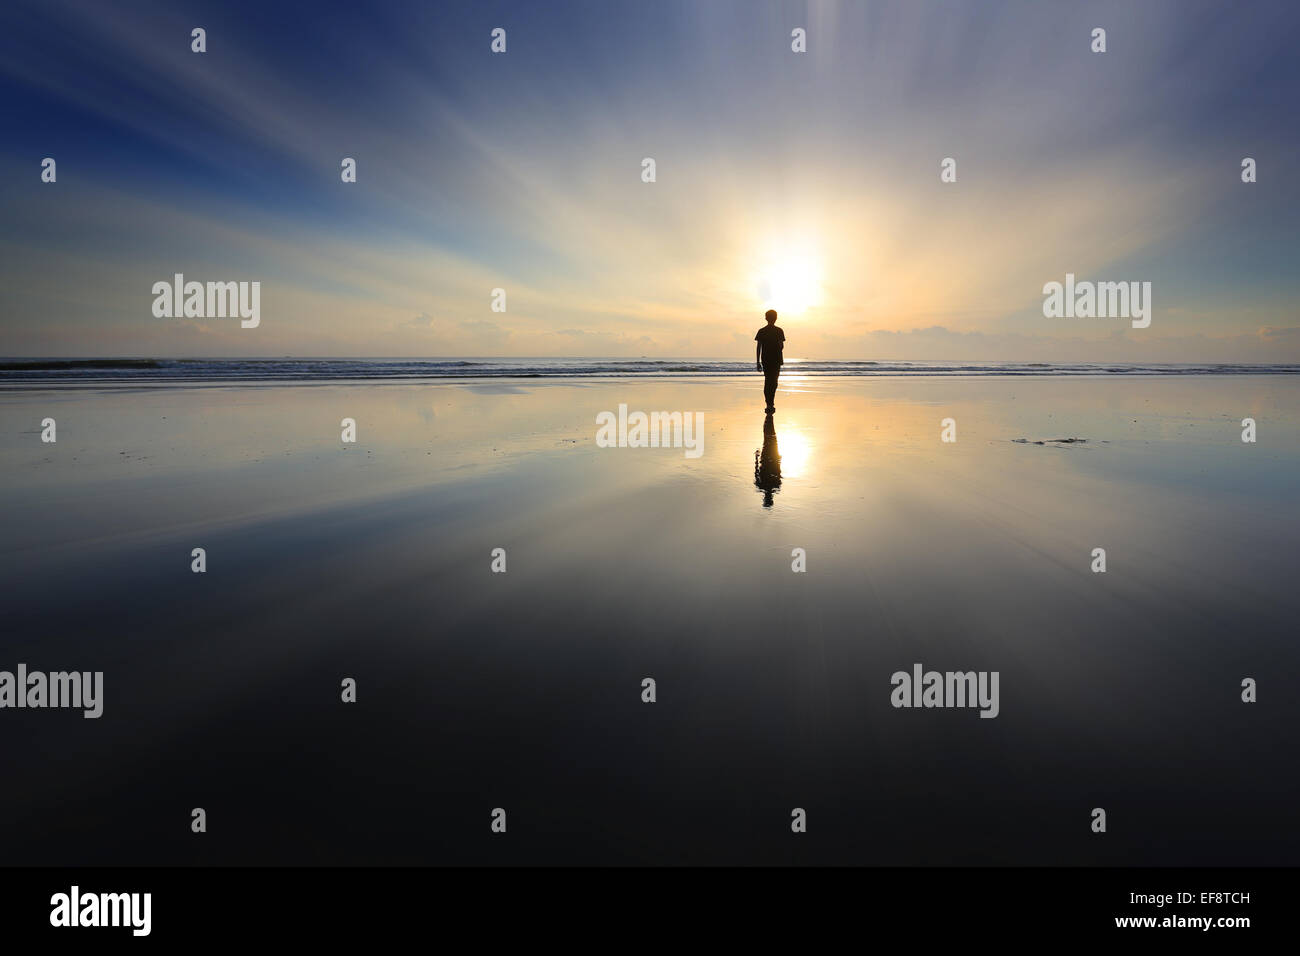 Boy walking on beach at sunset - Stock Image